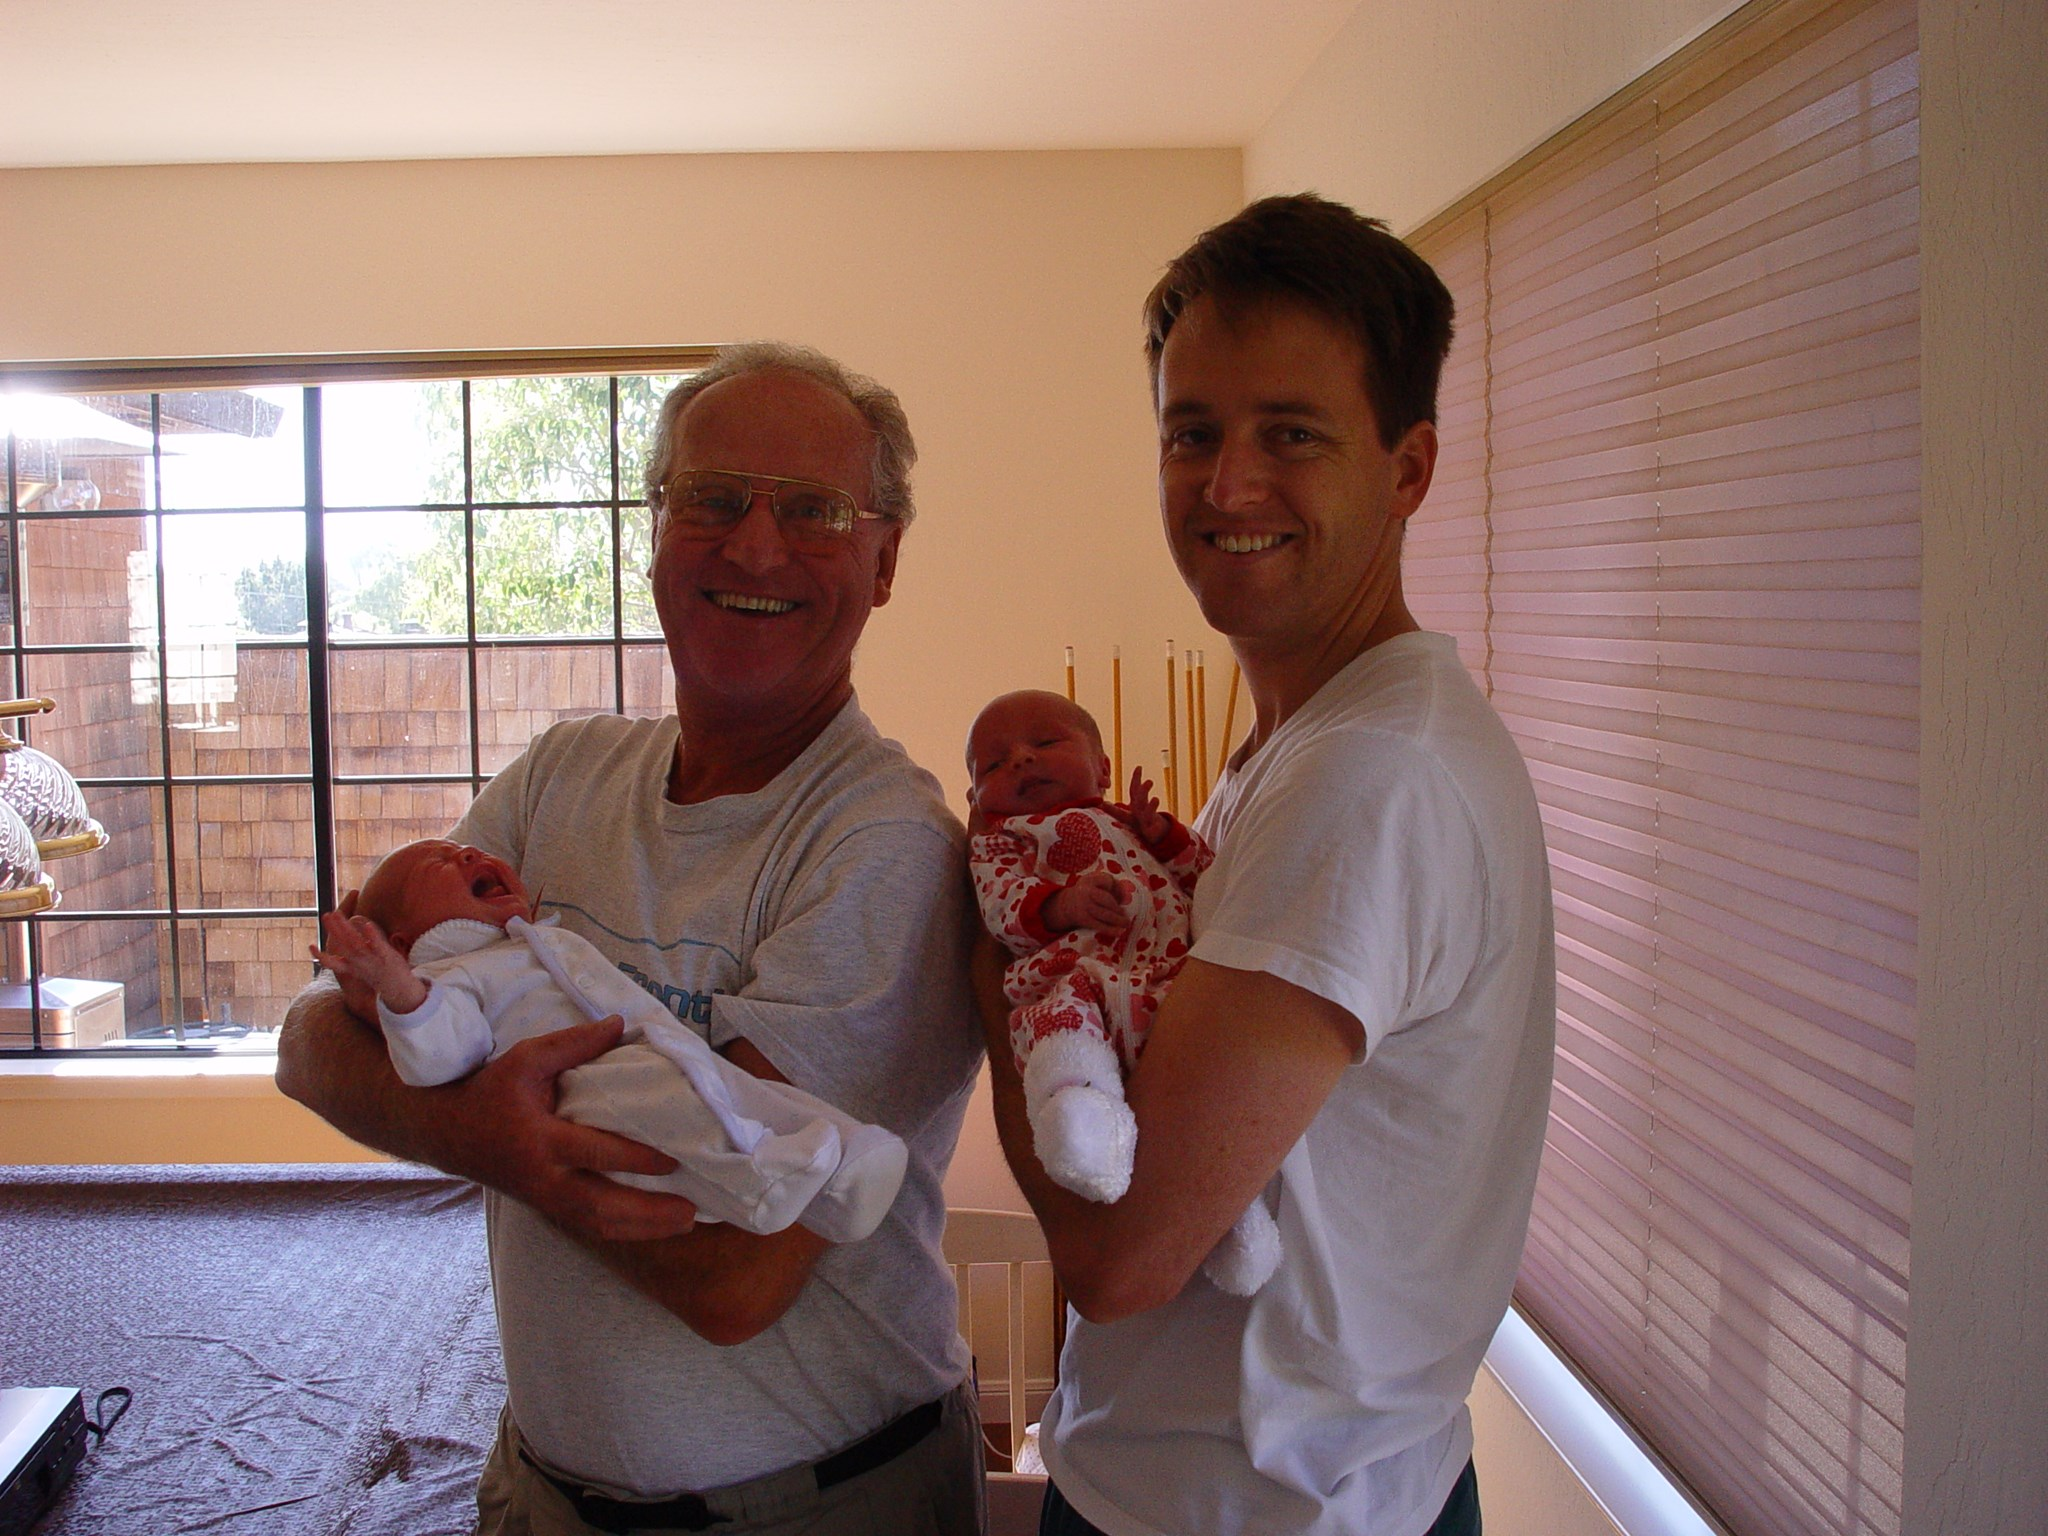 David and Petr with new born twins